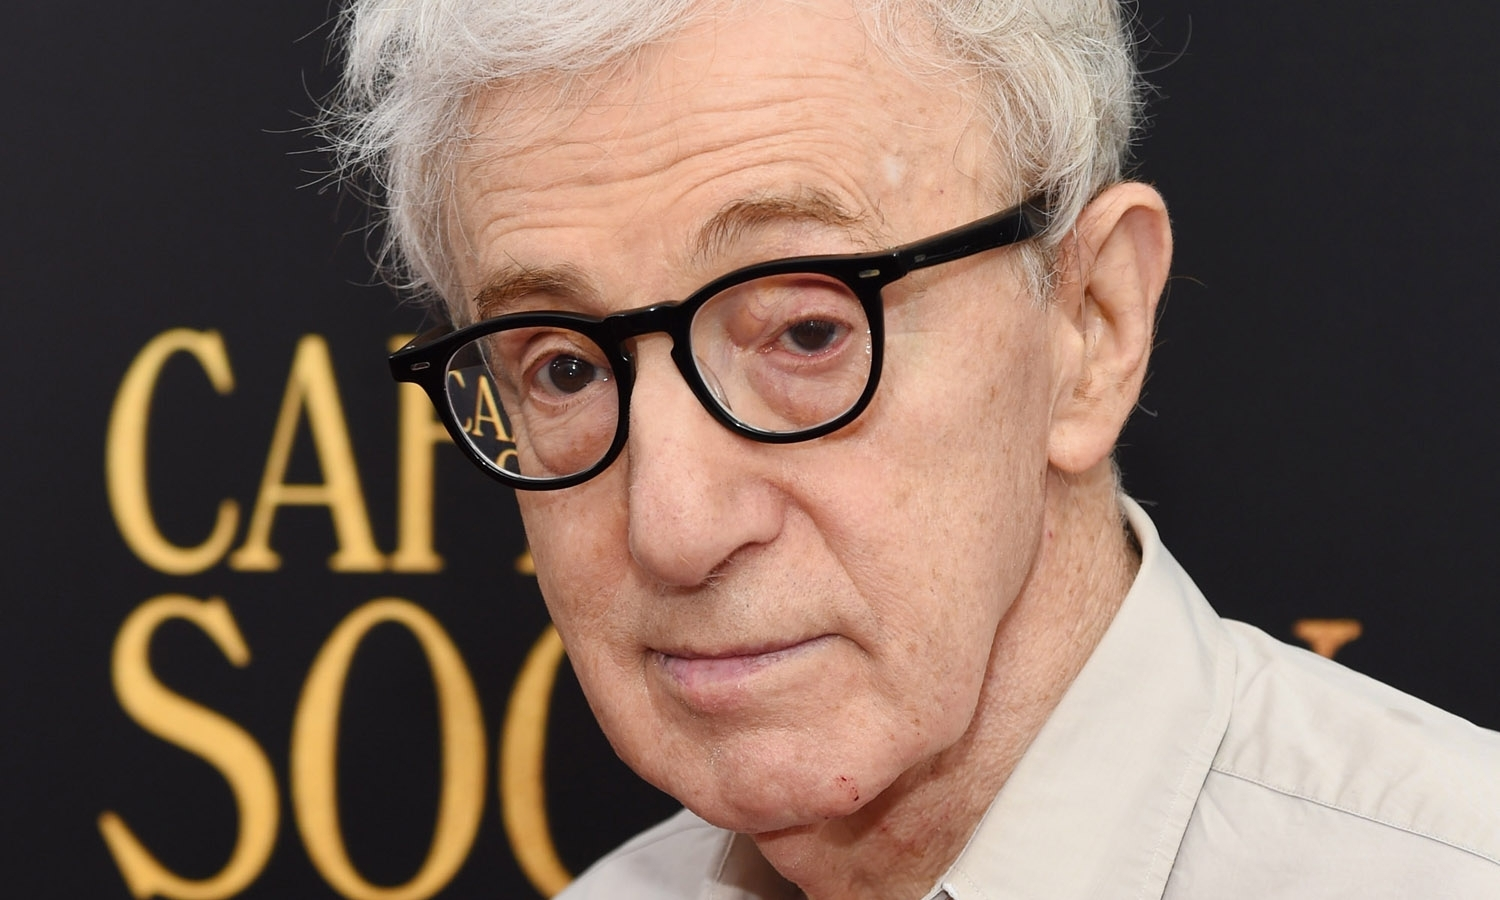 woody allen courts controversy with new movie featuring an